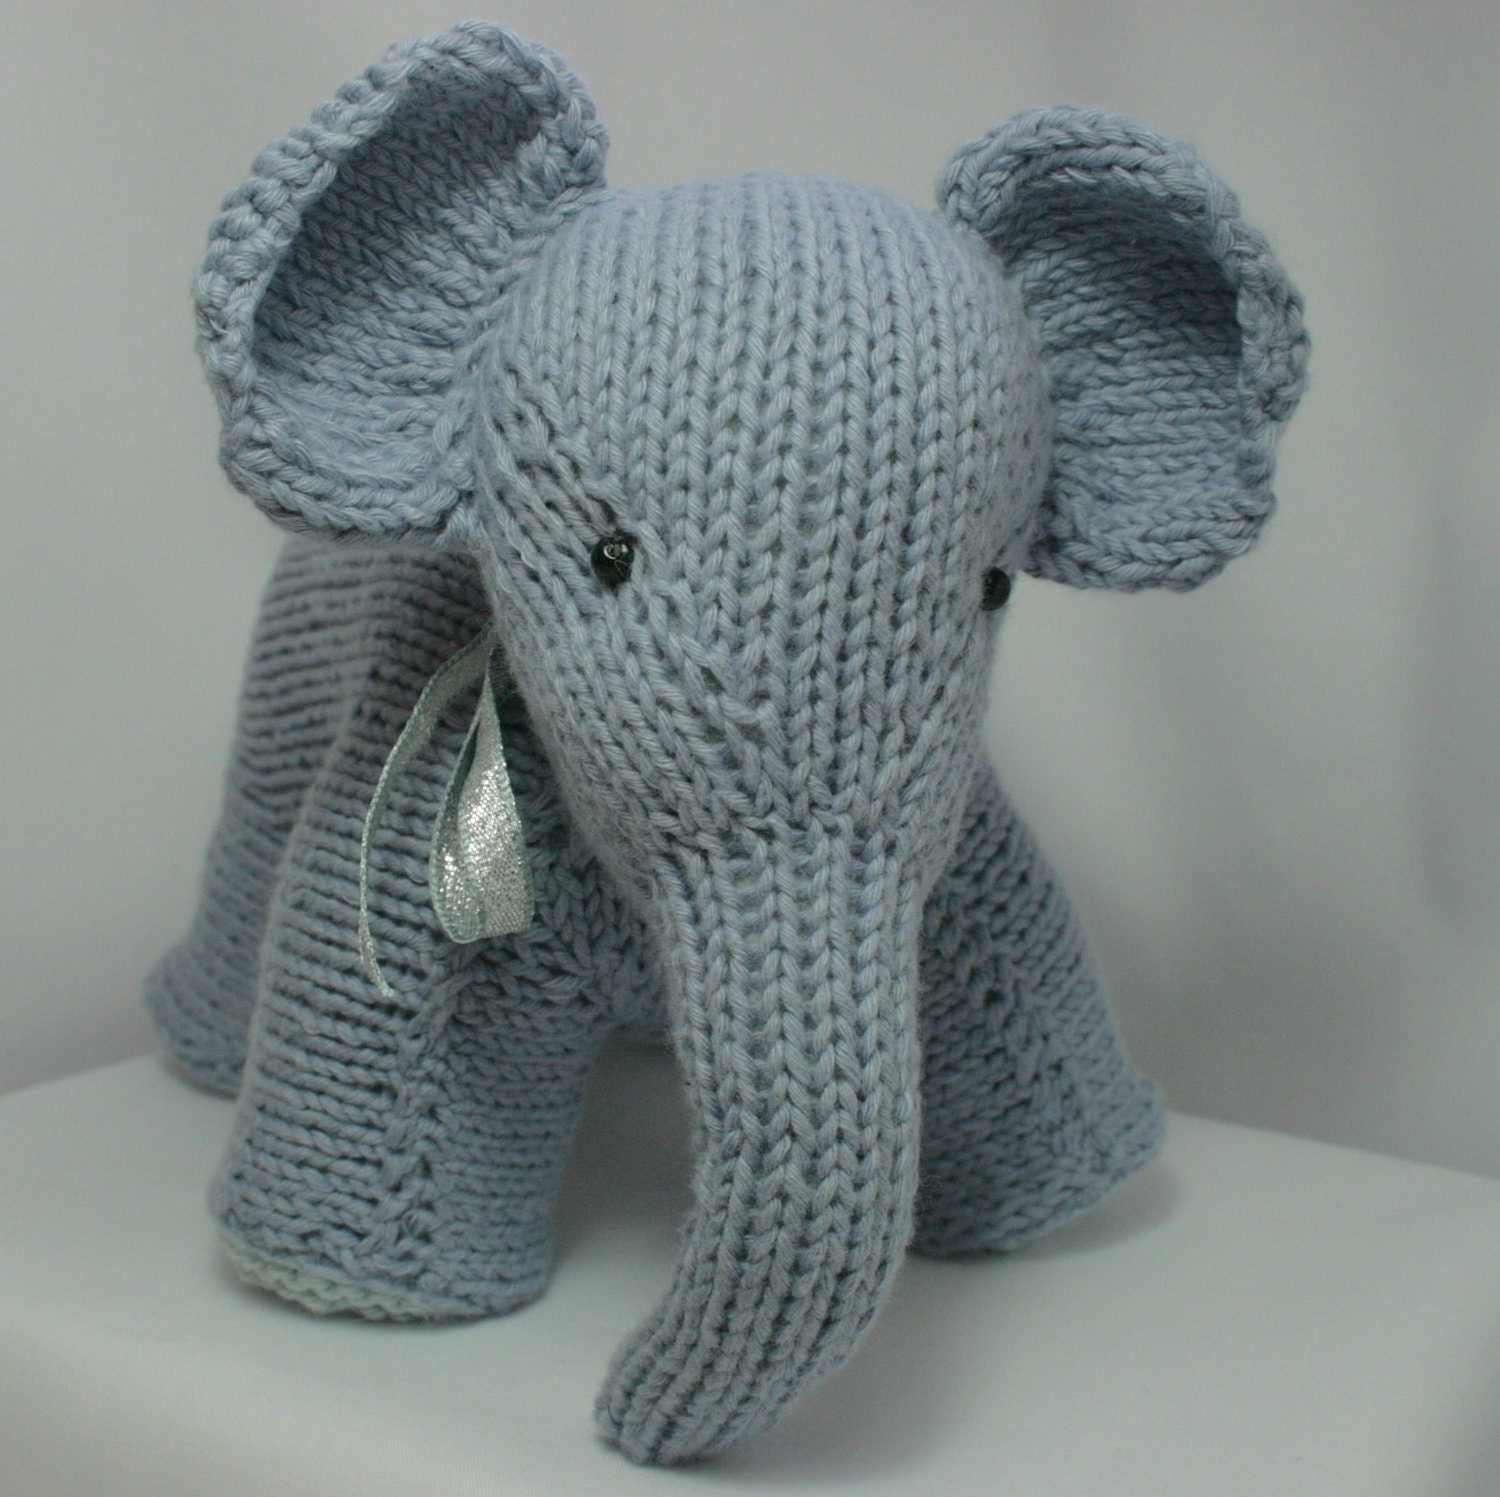 Cotton Knitted Elephant